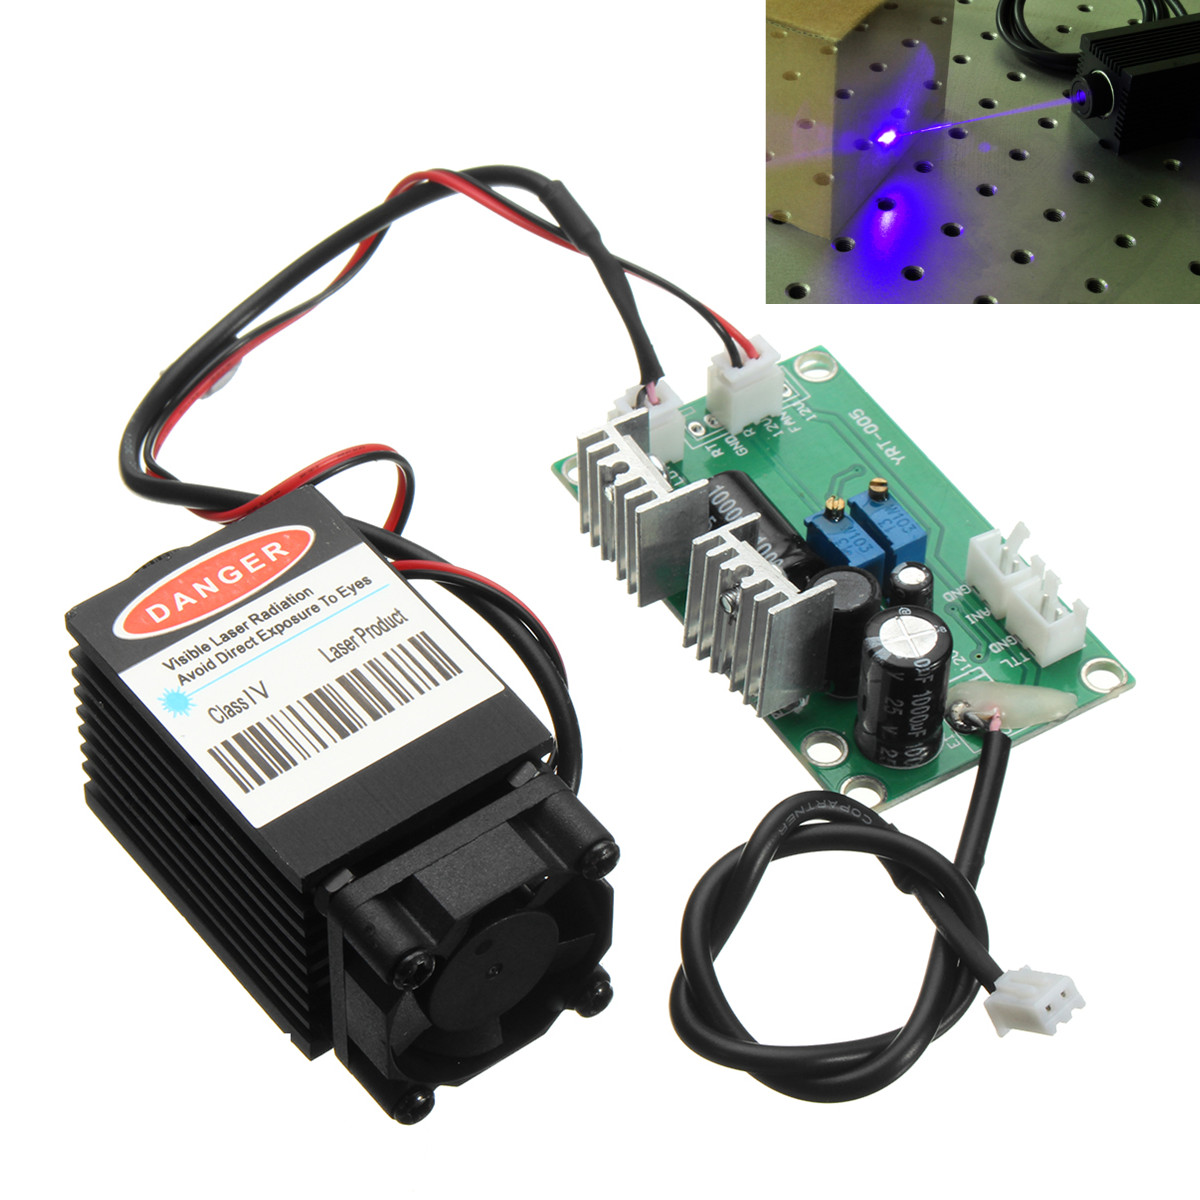 Focusable high power 1.6W 450nm blue laser module with TTL 12V input Wood carving DIY Laser engraver accessories цена